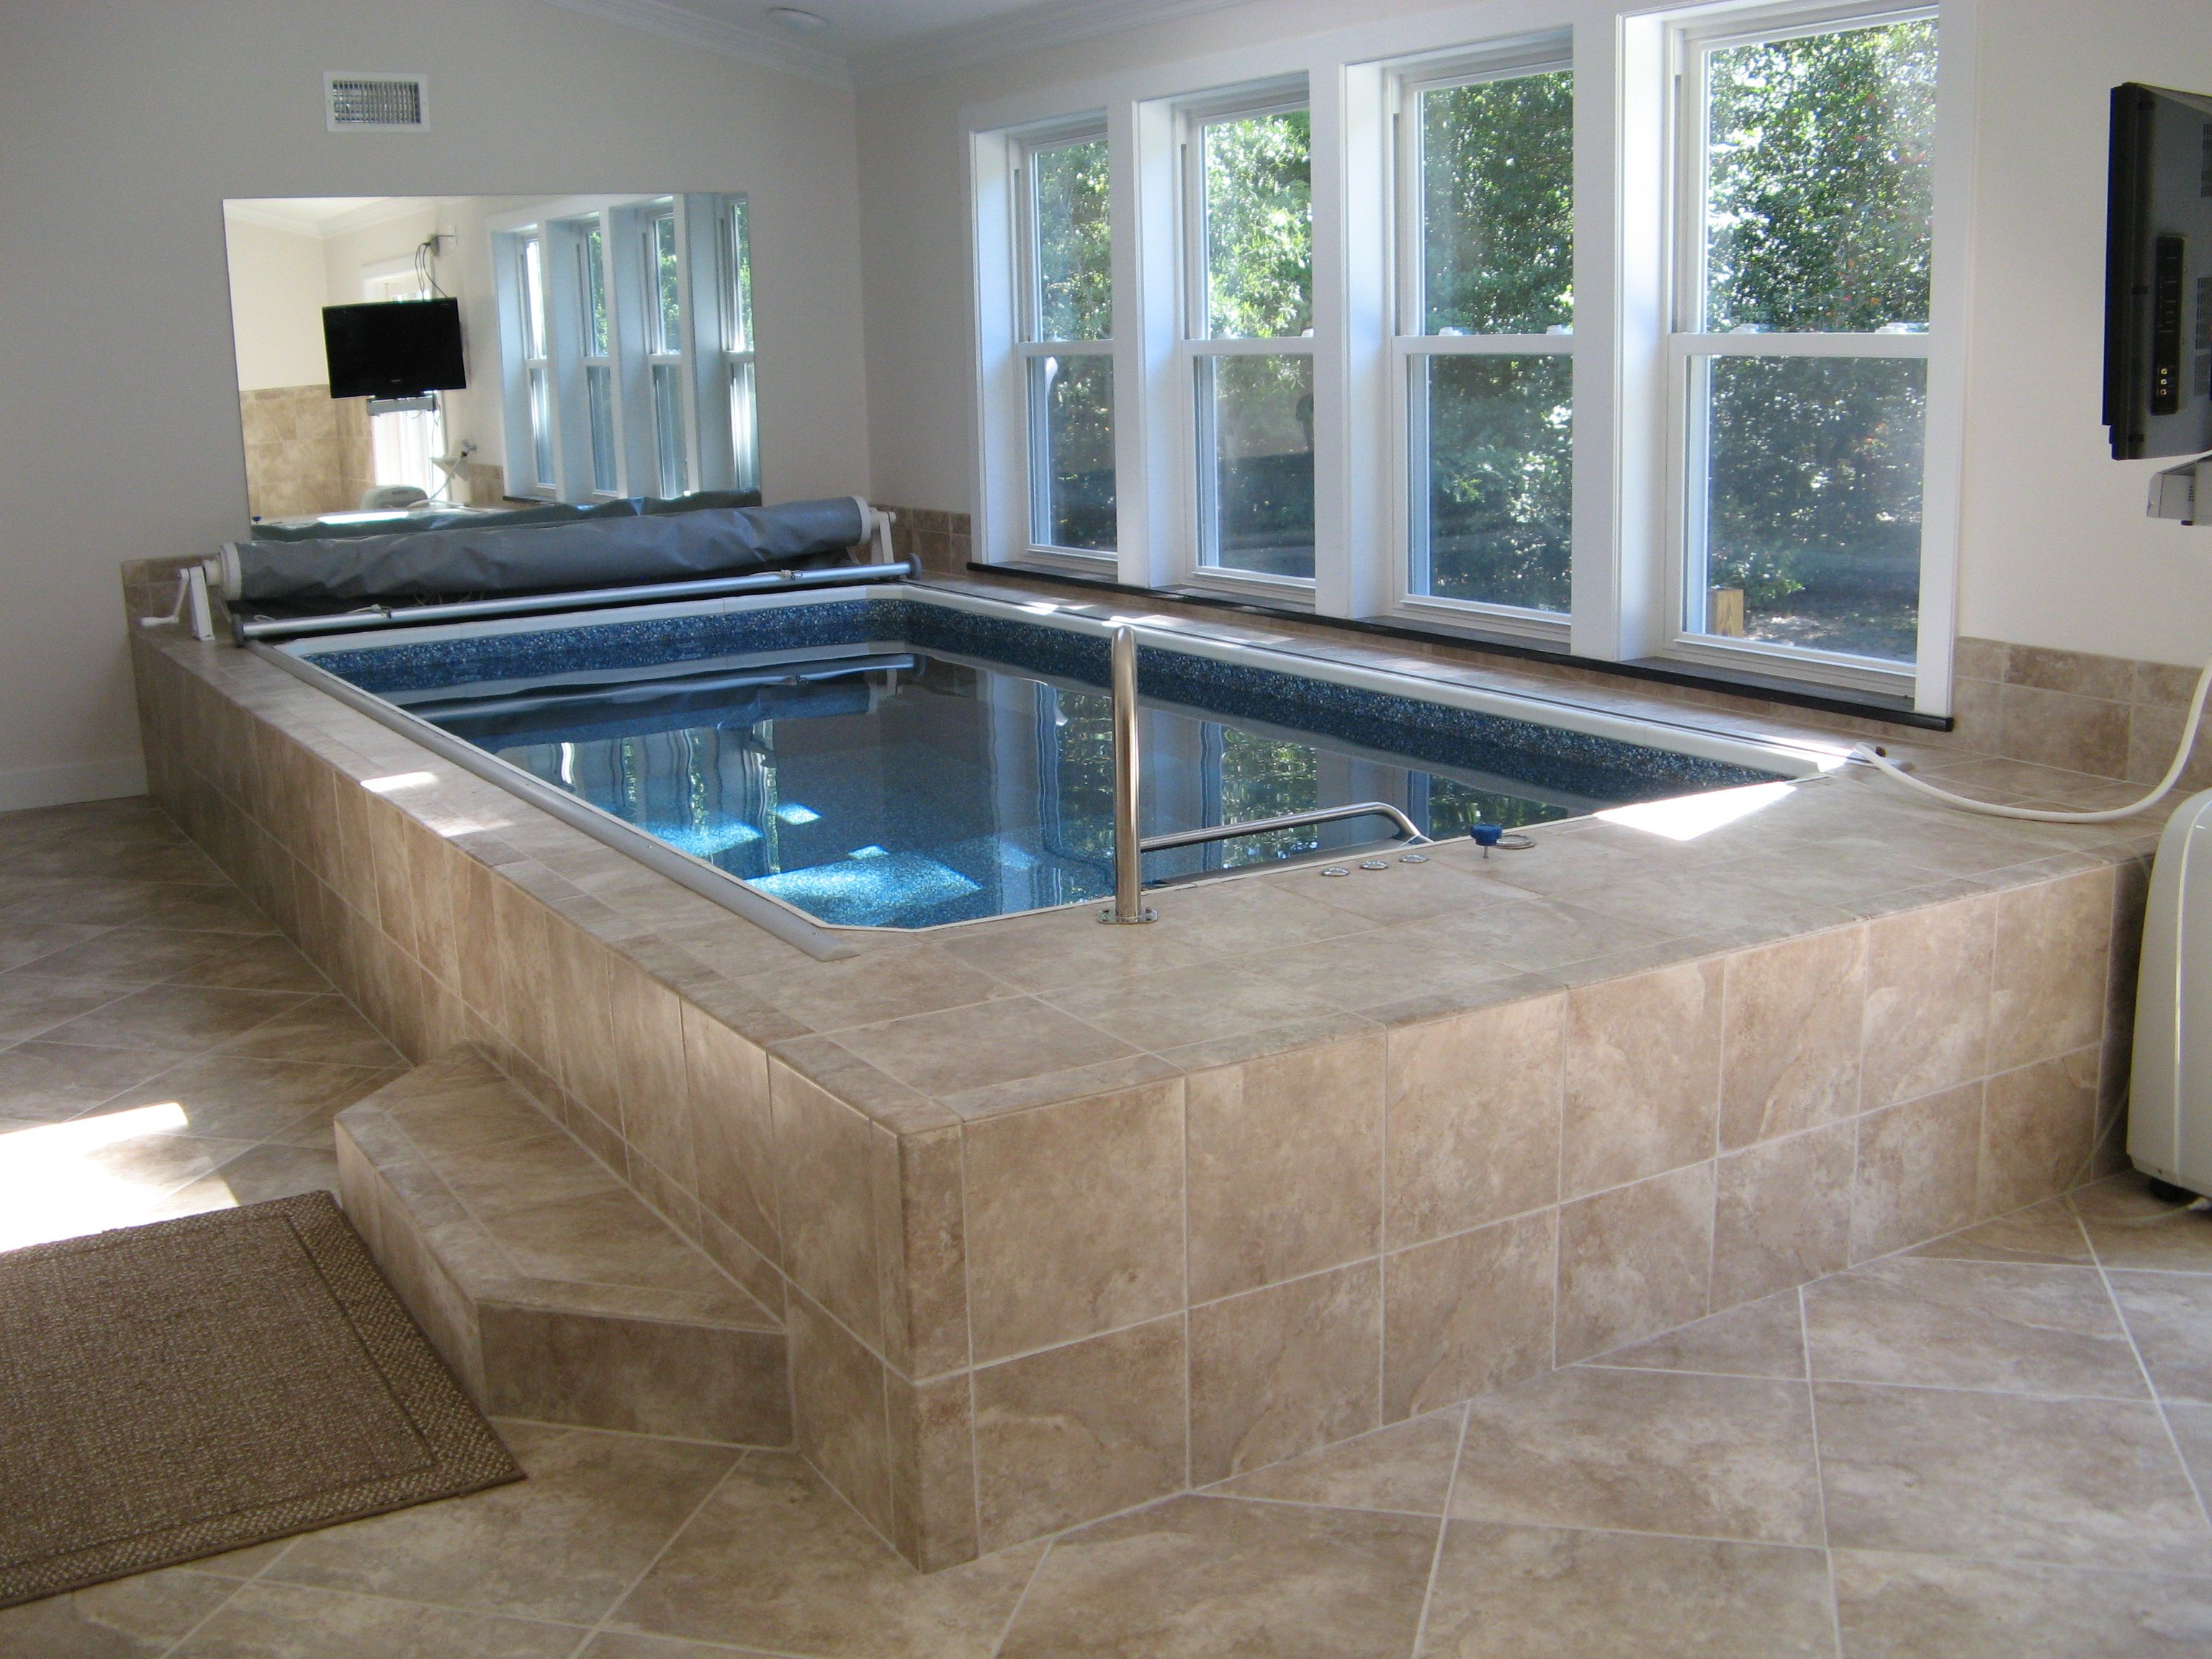 Swim at Home, year-round with an indoor Endless Pool! | Endless ...